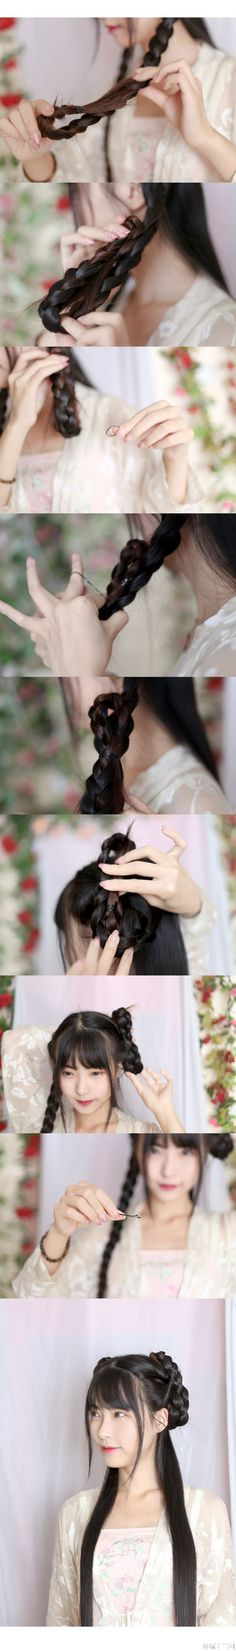 Haufen Zucker – Good Life Institute - New Sites Takeshita Street, Kawaii Hairstyles, Weave Hairstyles, Hair Inspo, Hair Inspiration, Pixie, Hair Reference, Everyday Hairstyles, Hair Art